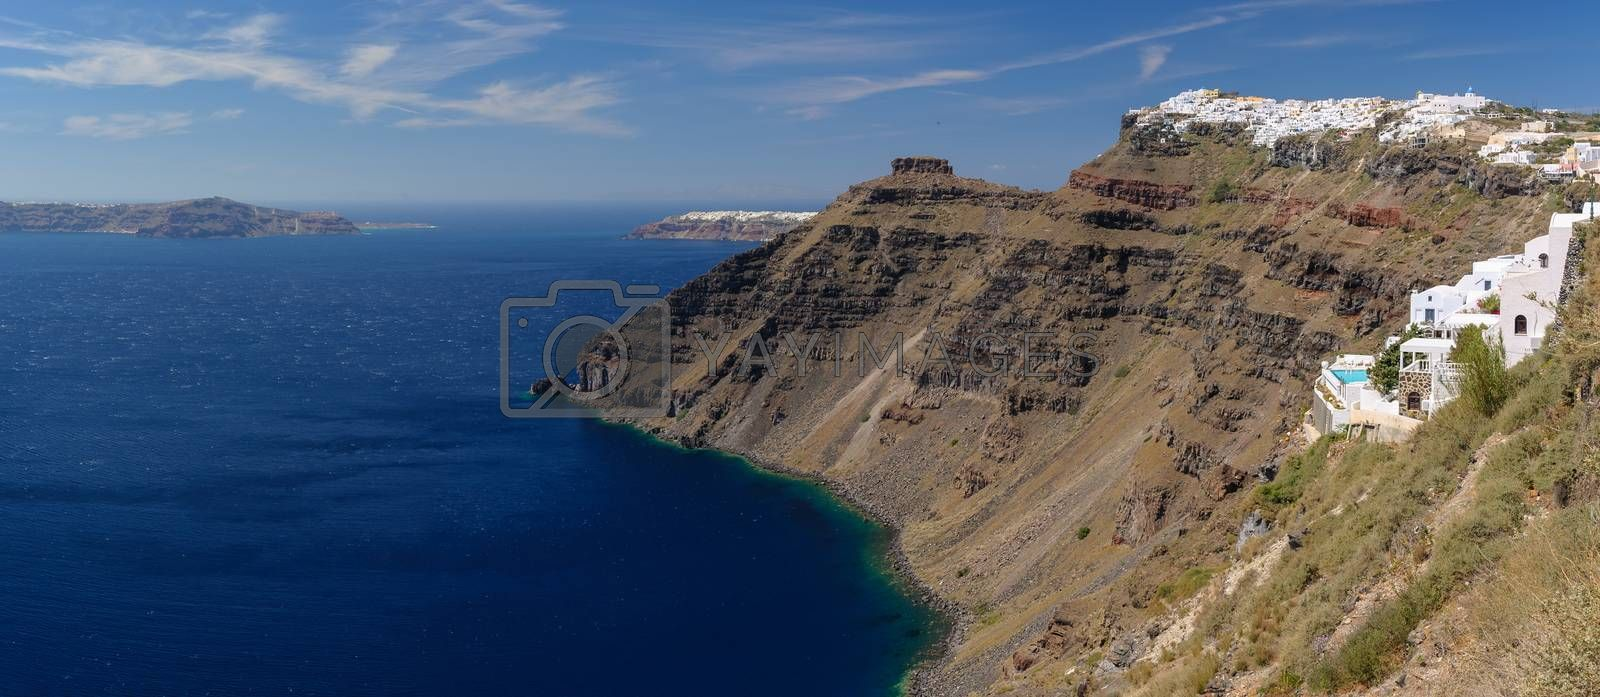 Typical view from Fira village to caldera sea and other villages, Santorini island, Greece